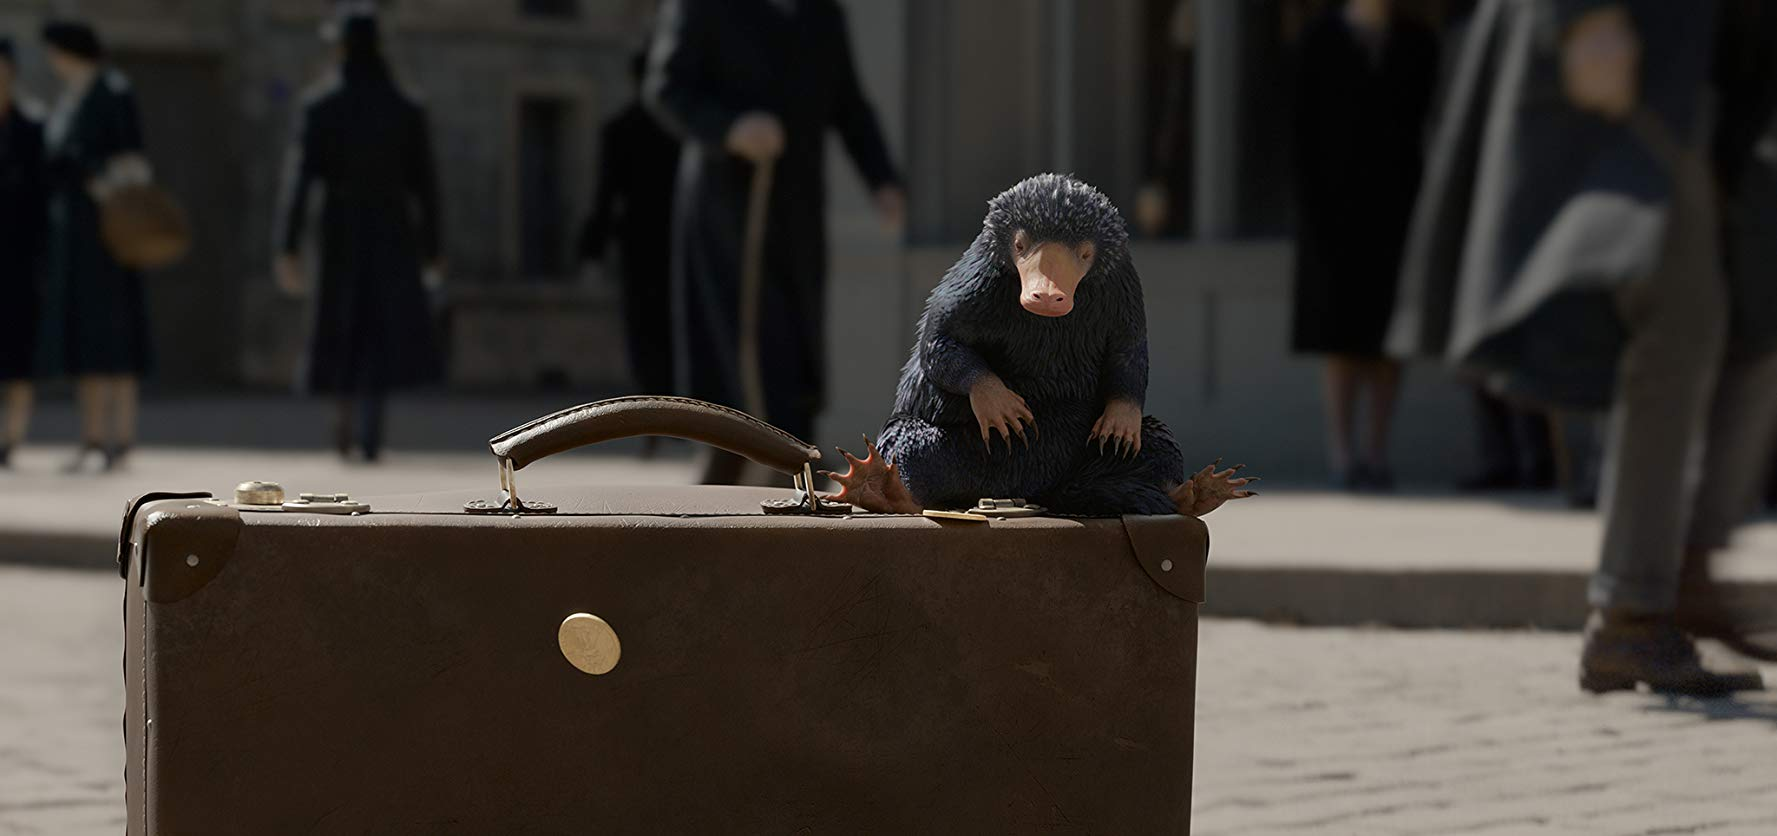 A niffler in FANTASTIC BEASTS: THE CRIMES OF GRINDELWALD (2018)